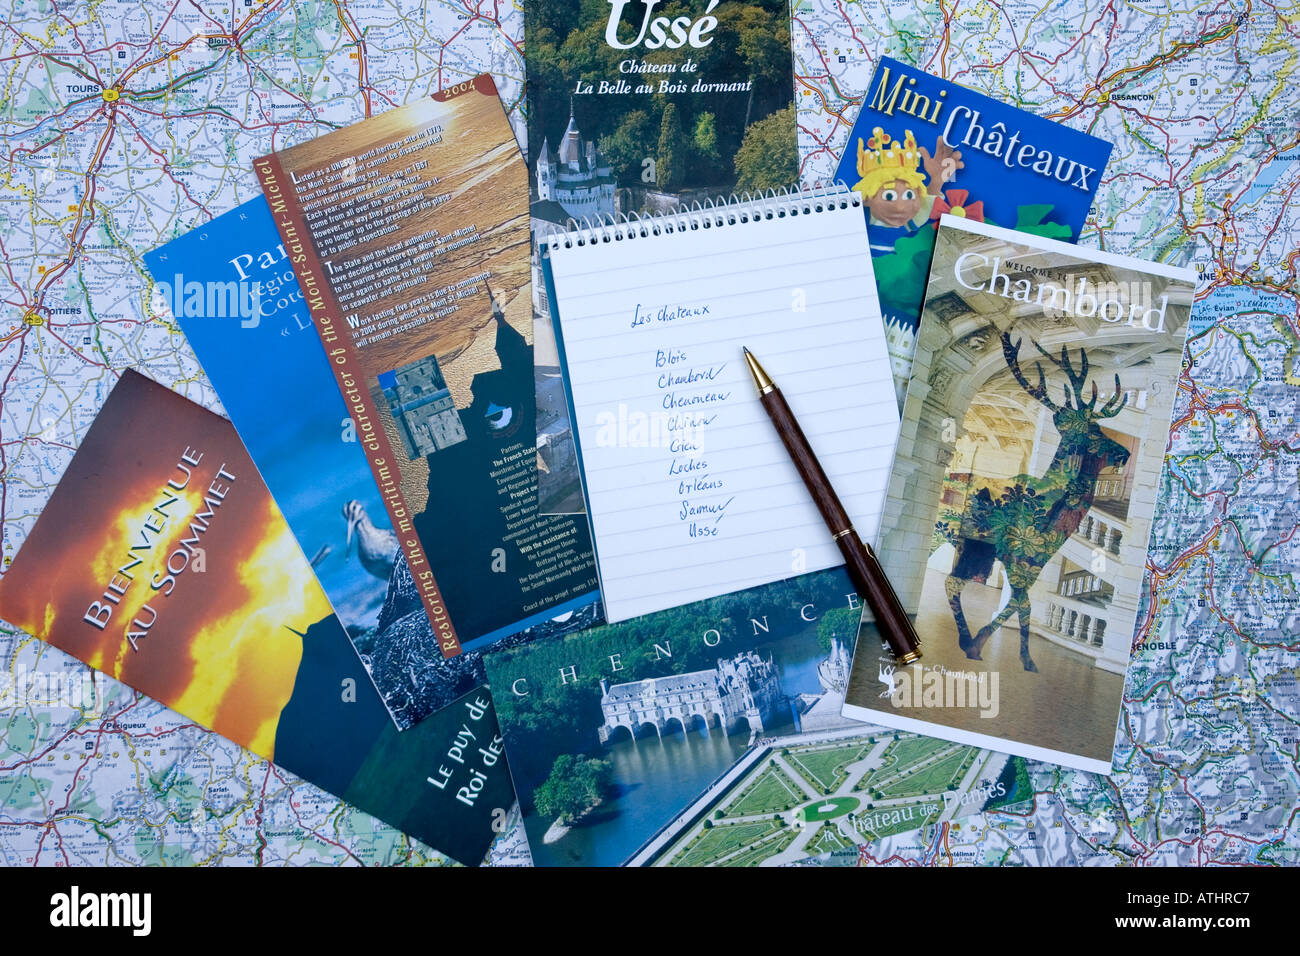 Brochures and notebook spread out on map of France - Stock Image